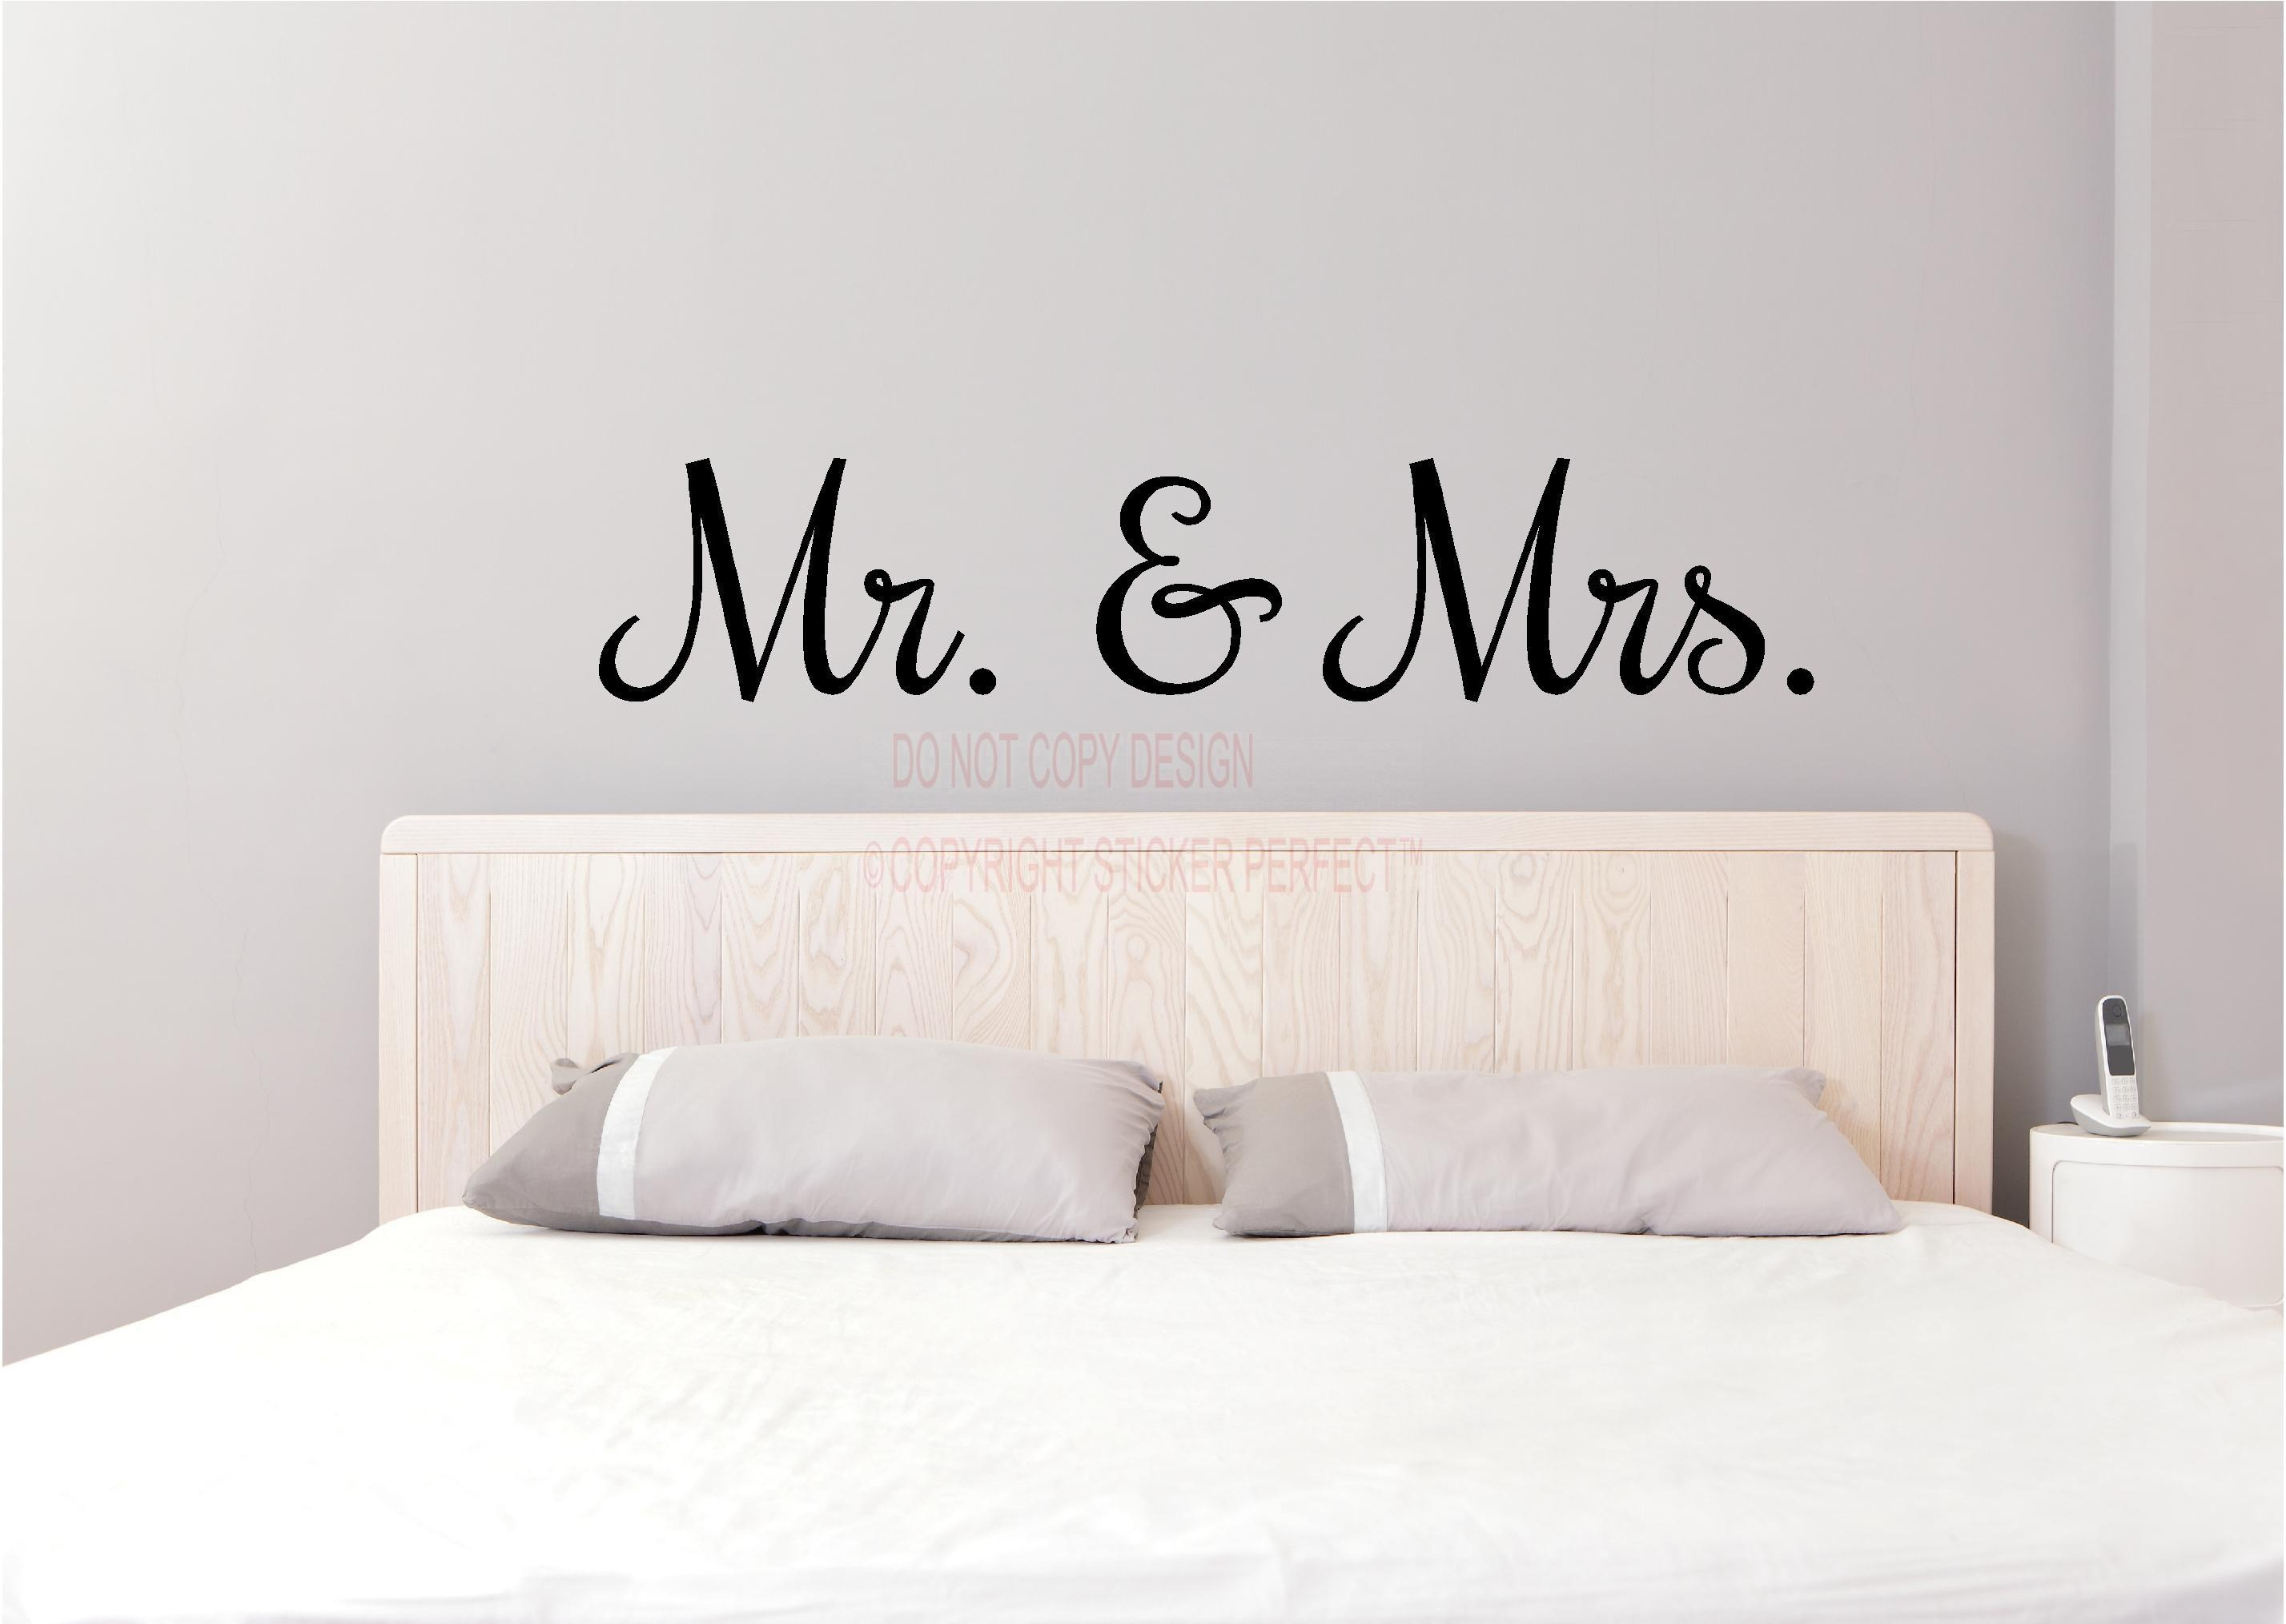 Mr And Mrs Bedroom Headboard Uplifting Home Decor Inspirational With Mr And Mrs Wall Art (Image 8 of 20)